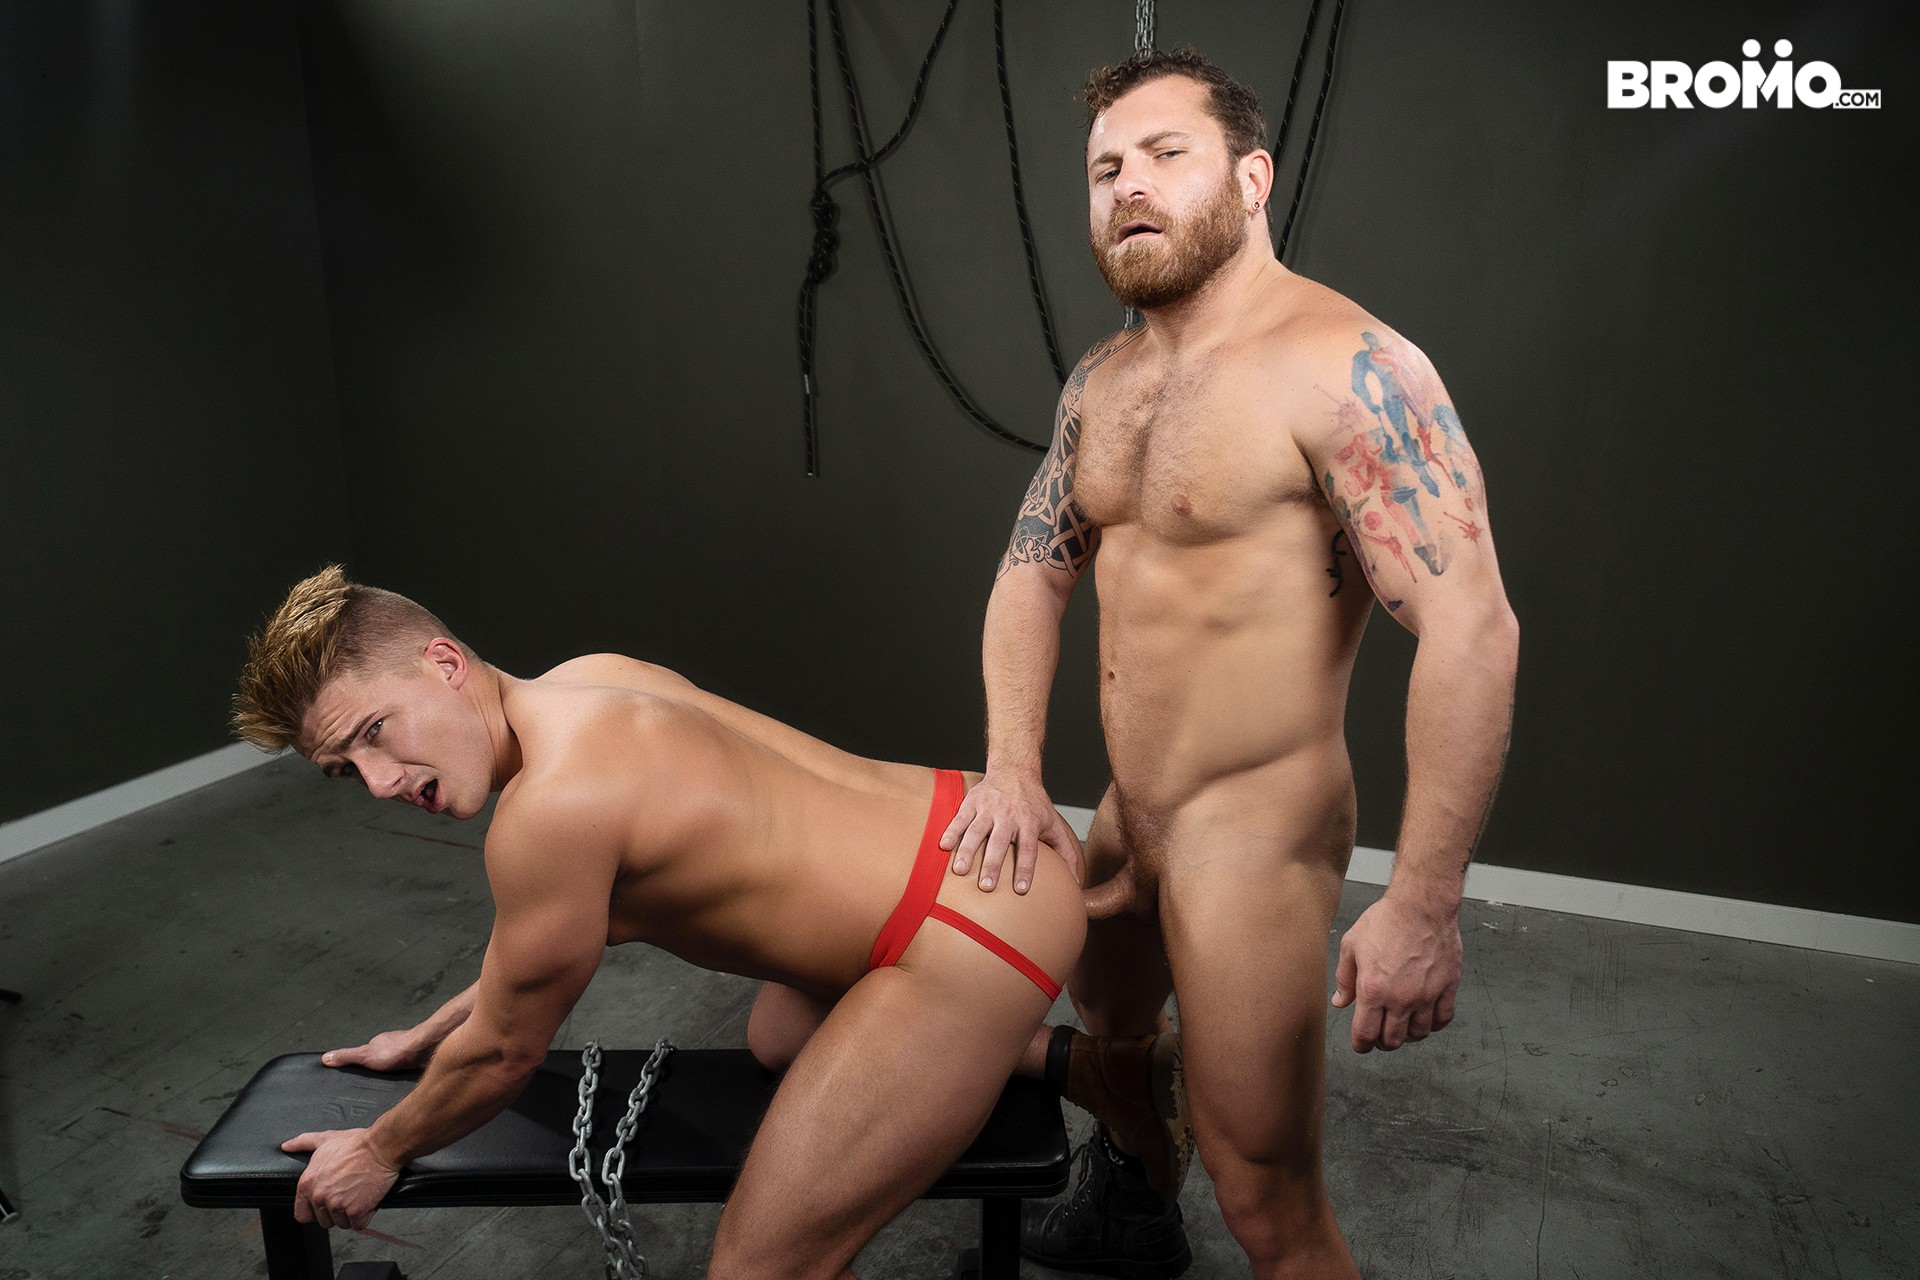 Gay porn star Jake Porter getting fucked